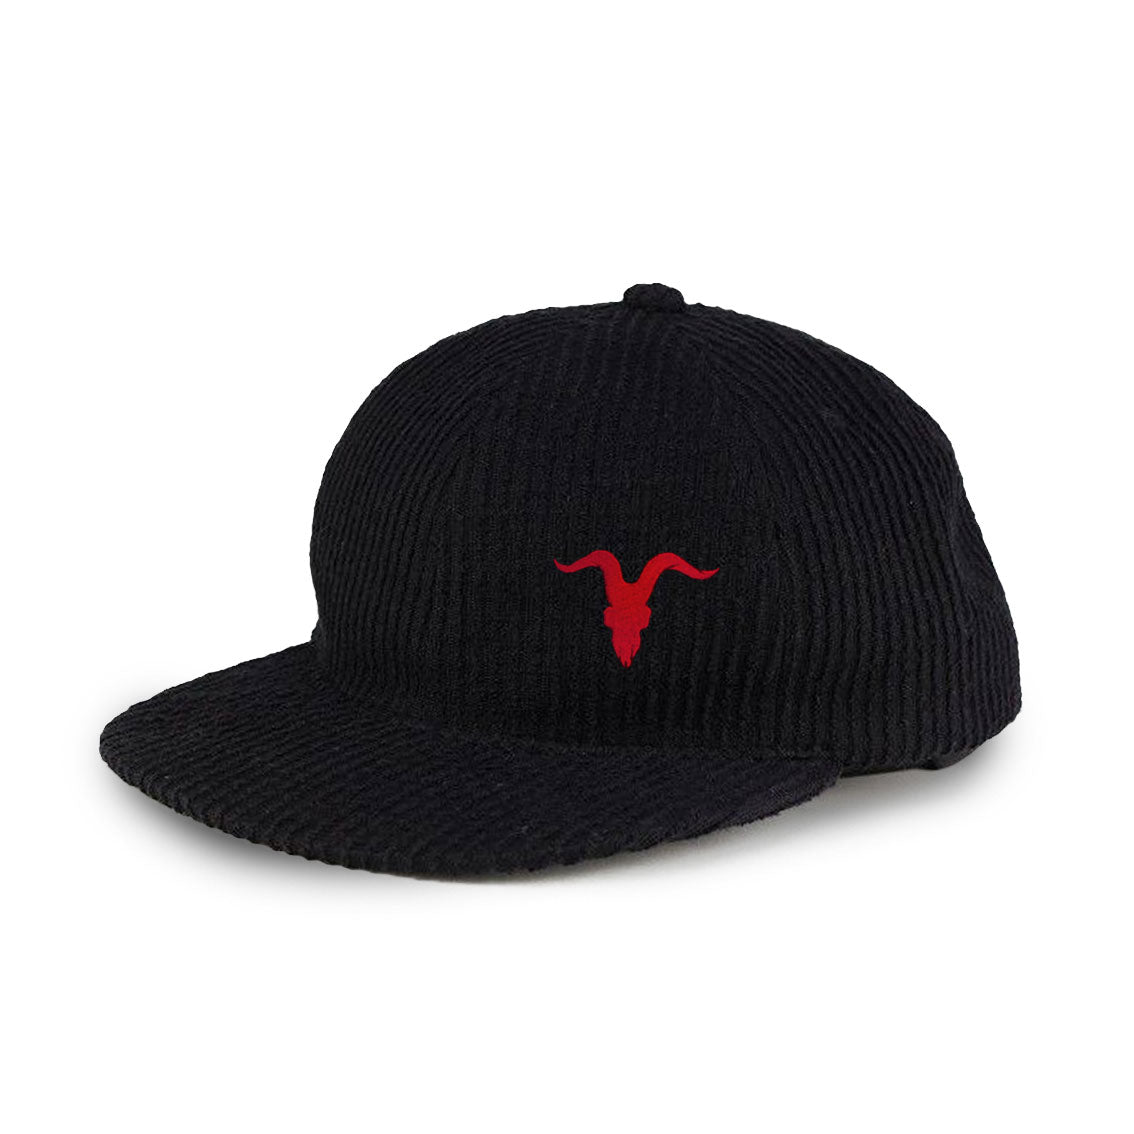 Corduroy Cap with Red Logo on Side